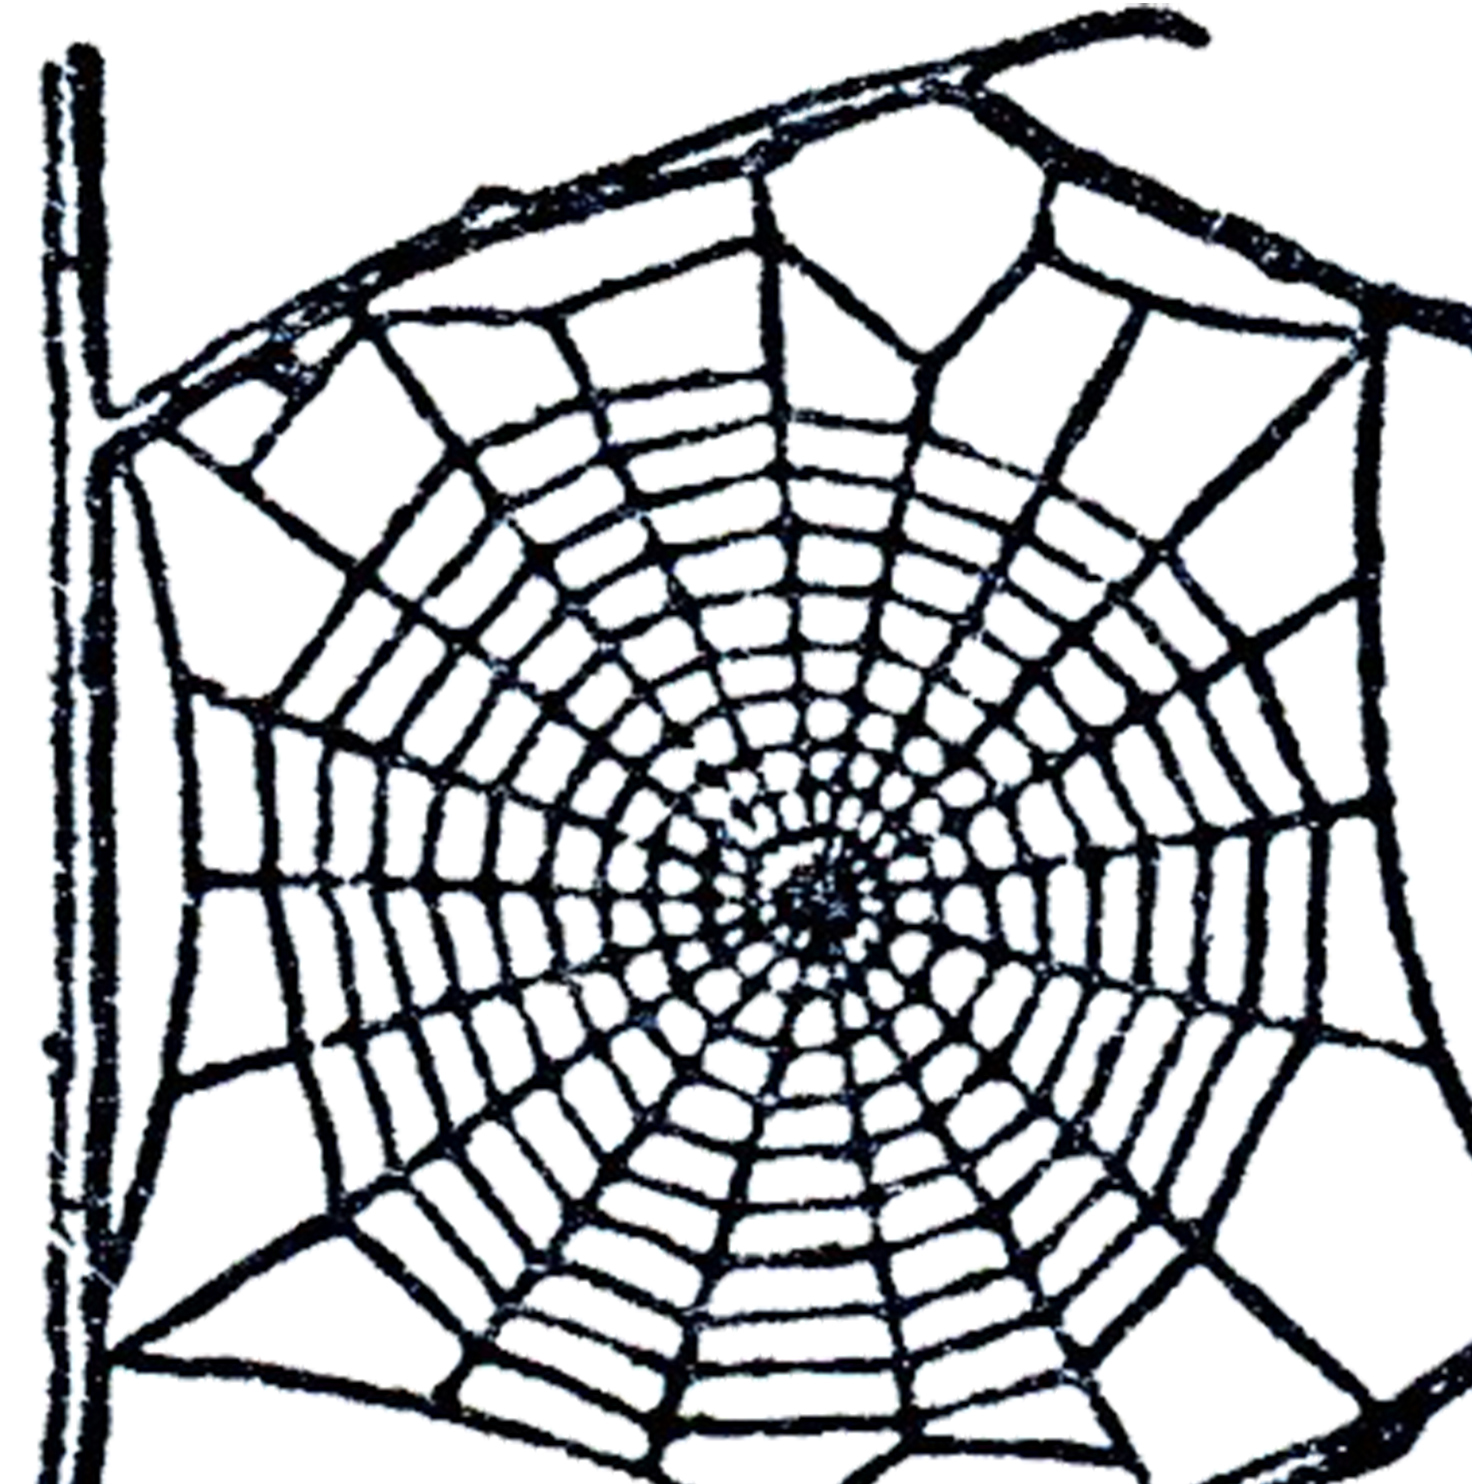 Spider Web clipart #14, Download drawings